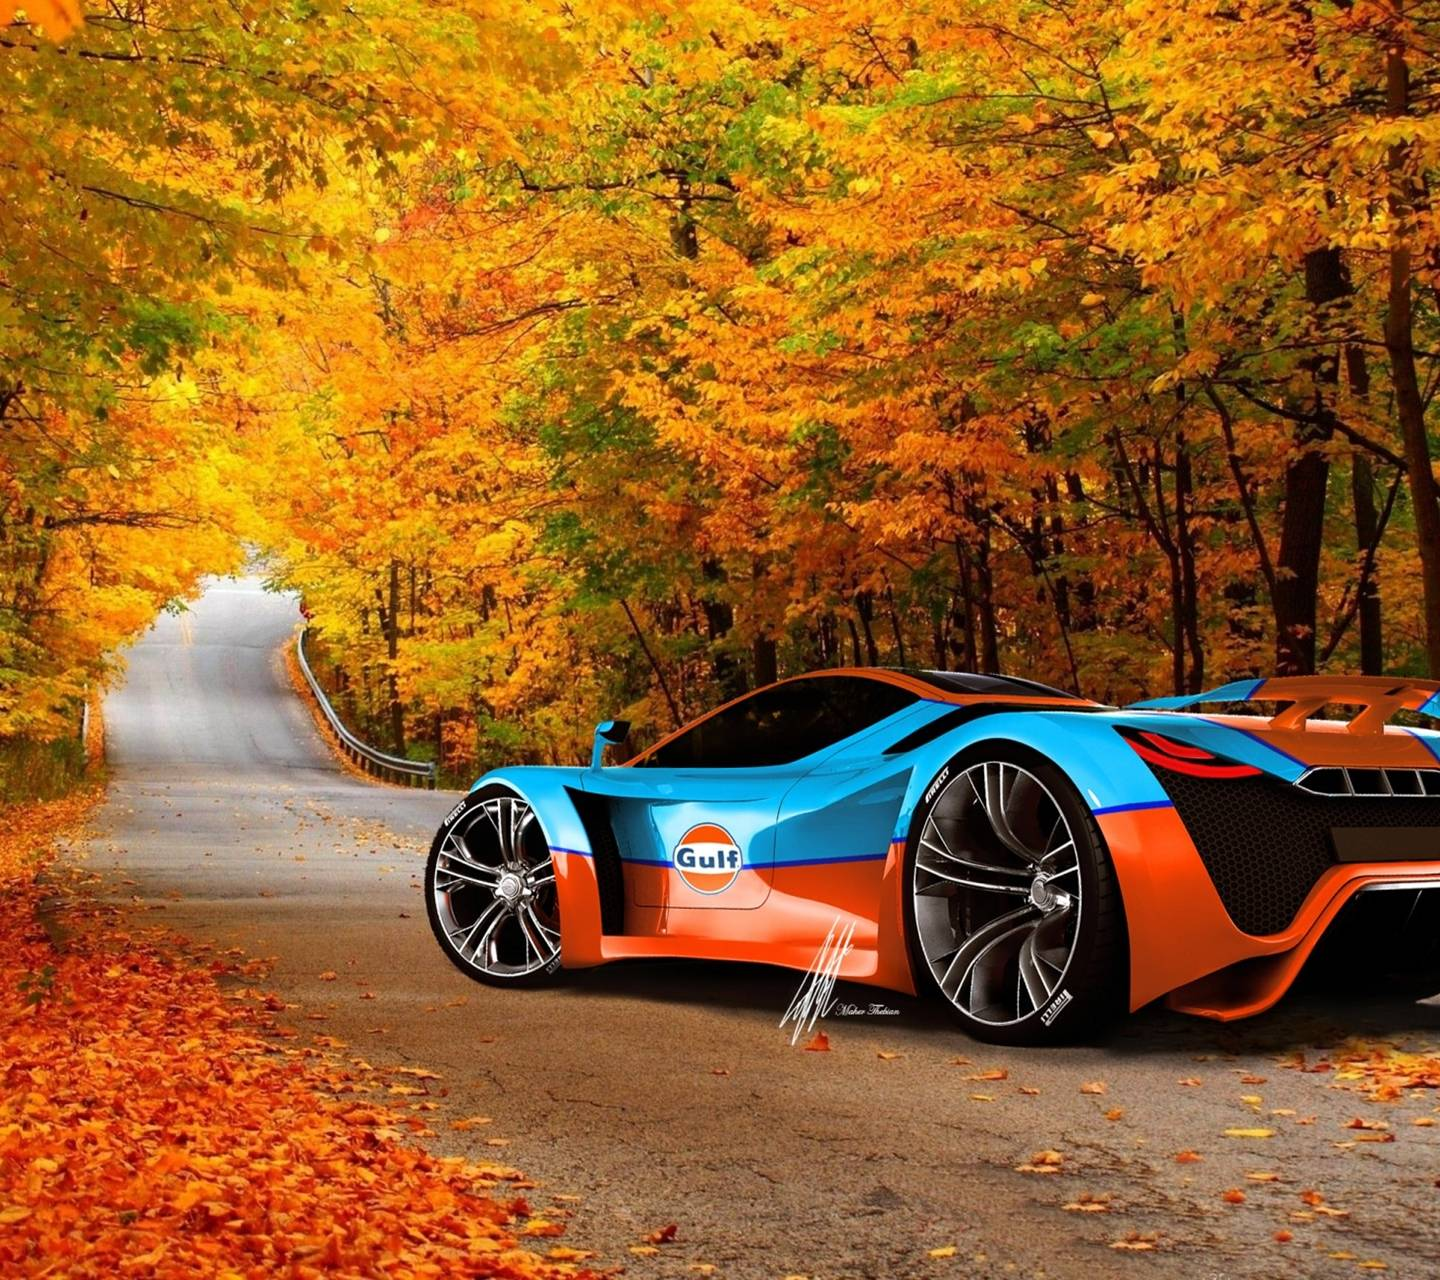 CAR IN NATURAL HD Wallpaper By PSJ_10